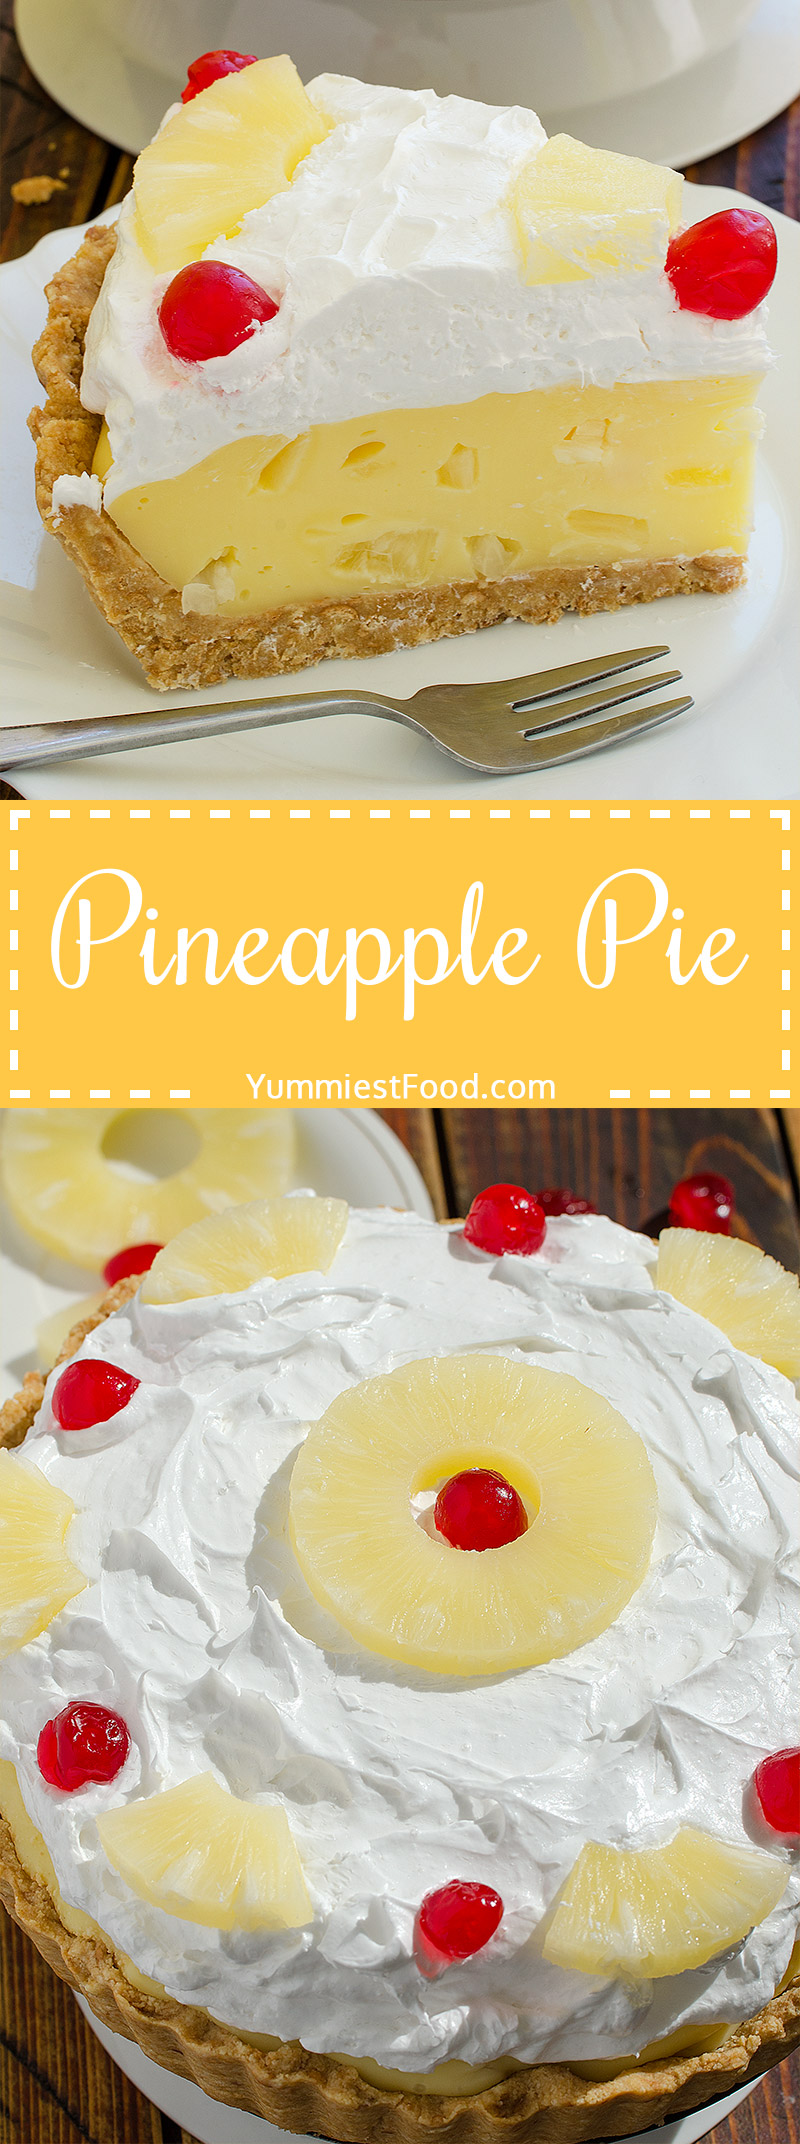 Pineapple Pie a quick recipe for creamy, refreshing and so delicious summer pie.